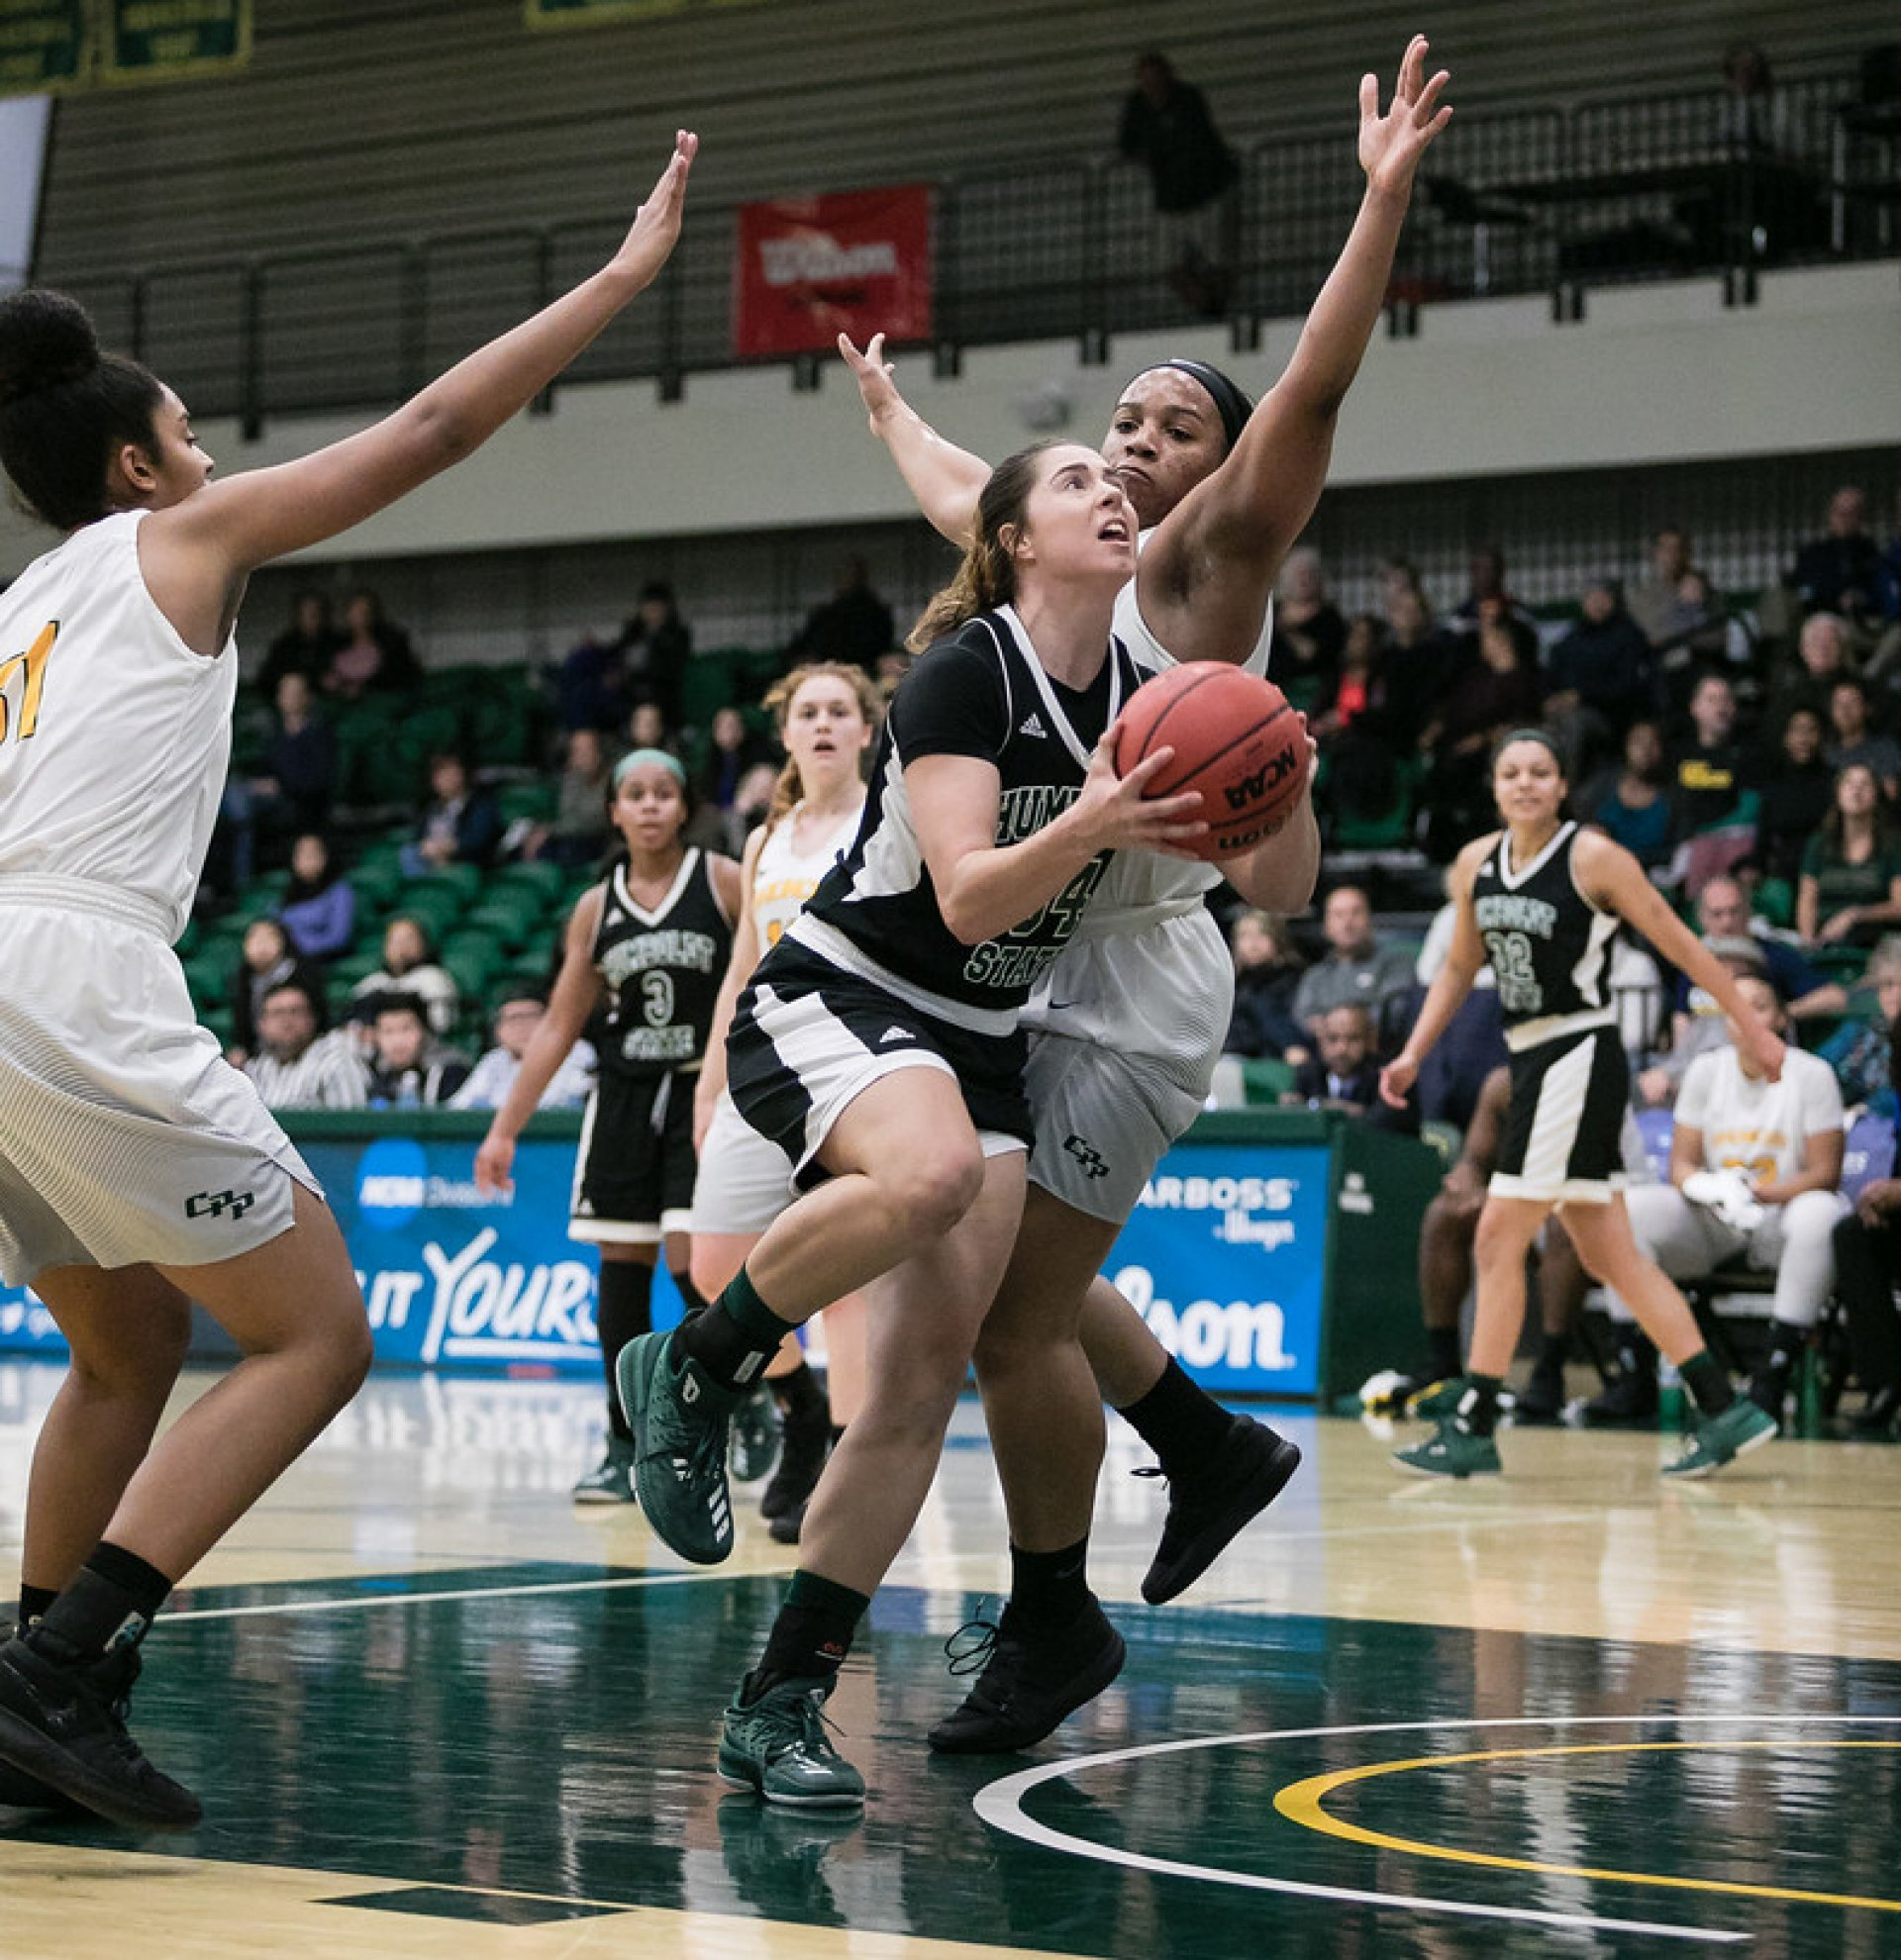 Senior forward Mikaela Shannon goes up for the layup between two Cal Poly Pomona players. The Jacks beat Pomona 69-53 and move on to the CCAA championship.  Photo by Trent Preston (CPP).